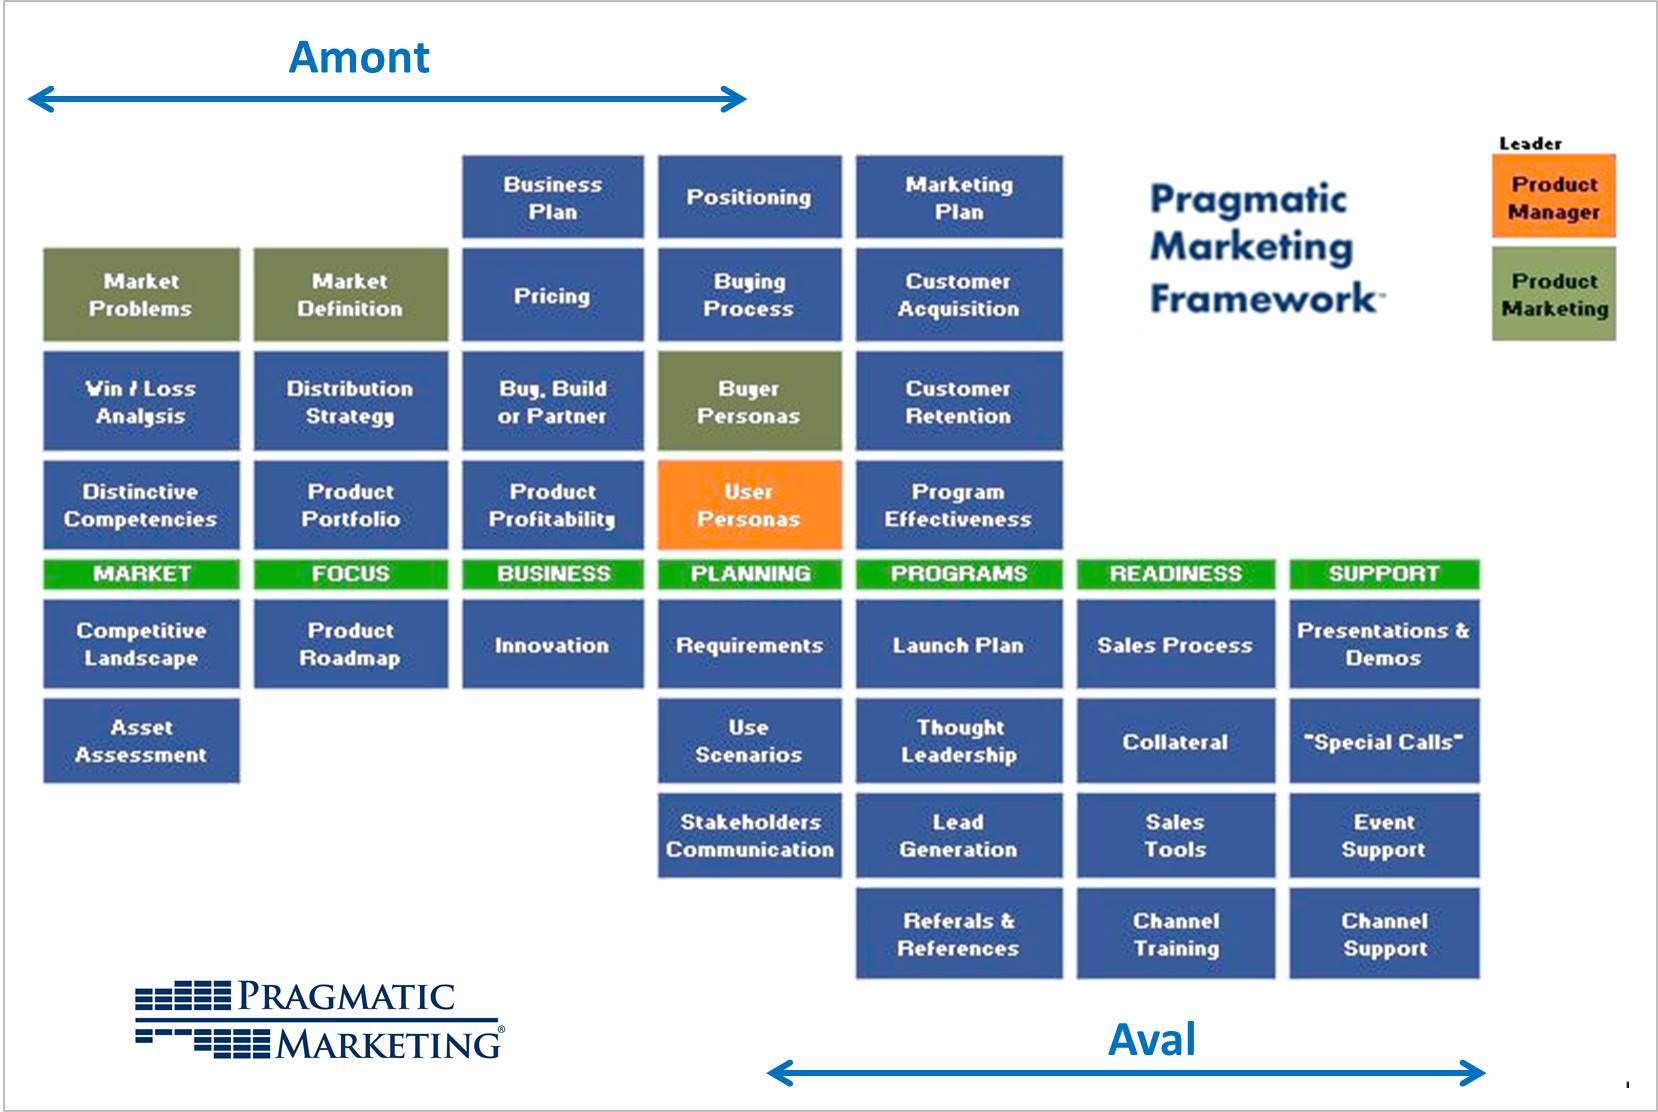 PragmaticMarketing_Framework-amont-aval